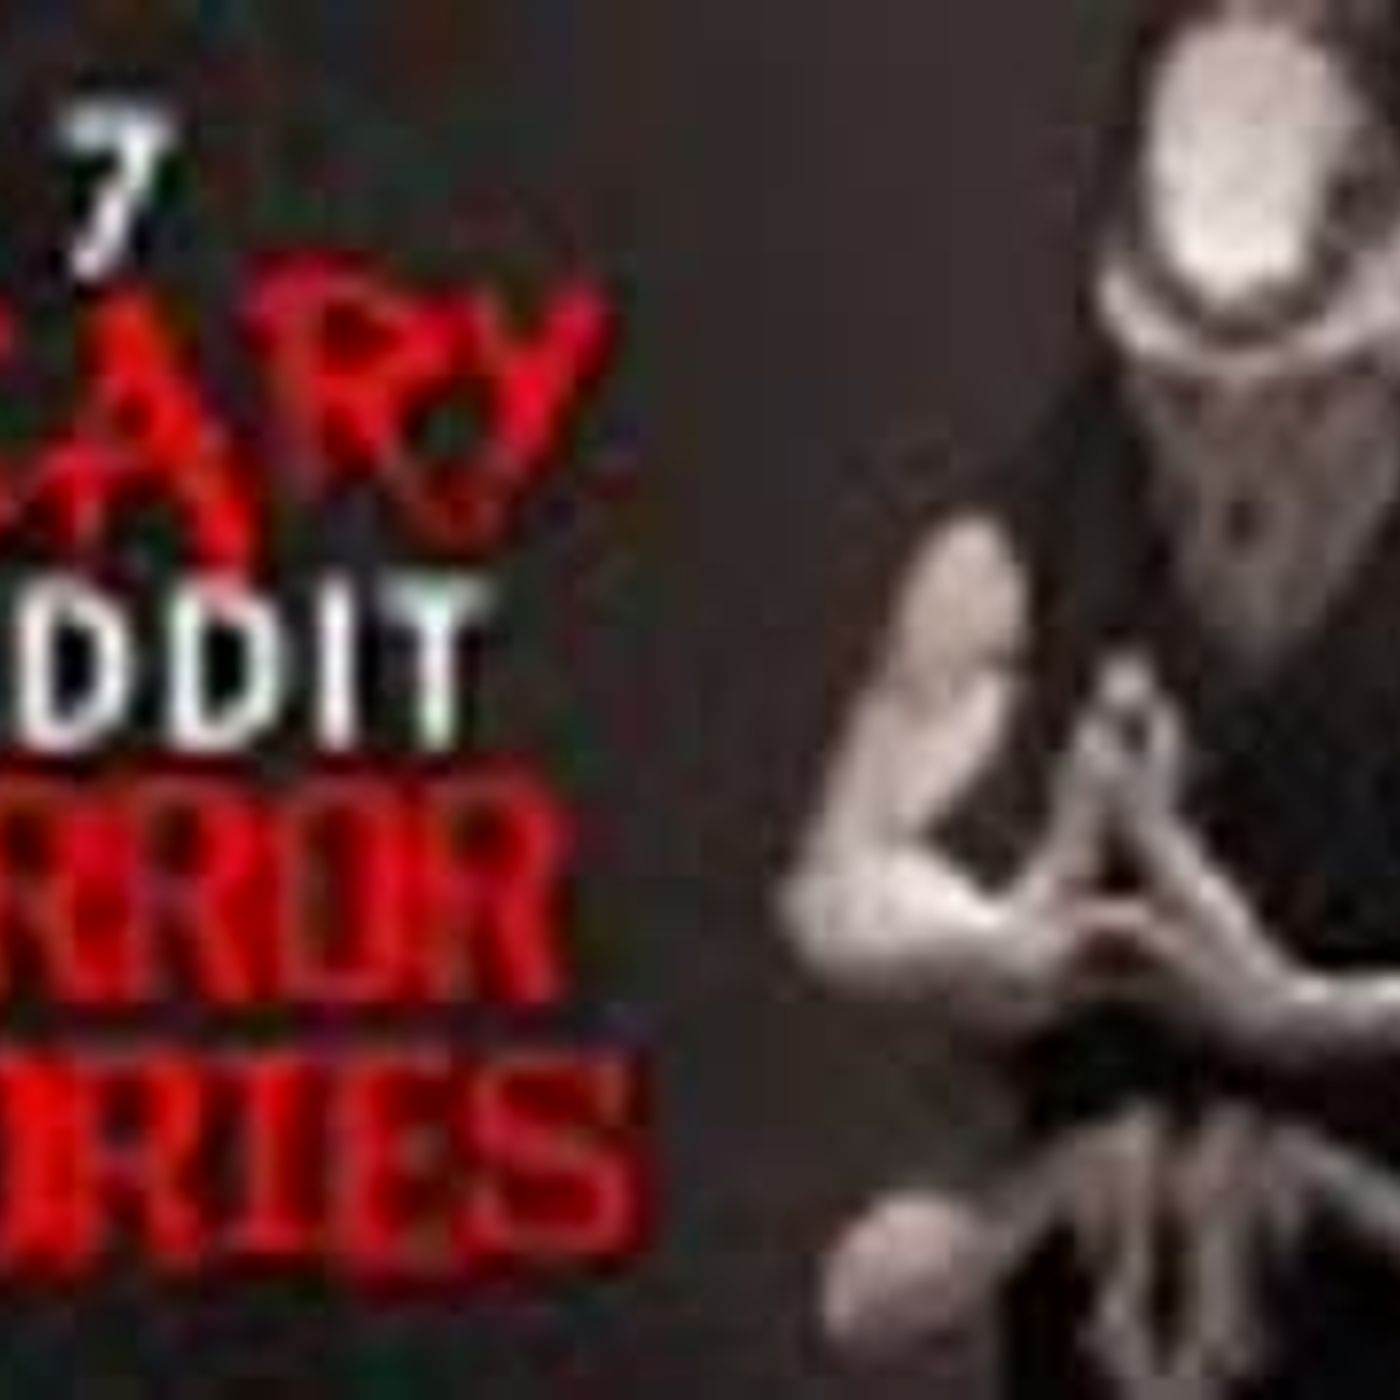 7 REDDIT HORROR STORIES TO END THE HALLOWEEN MONTH